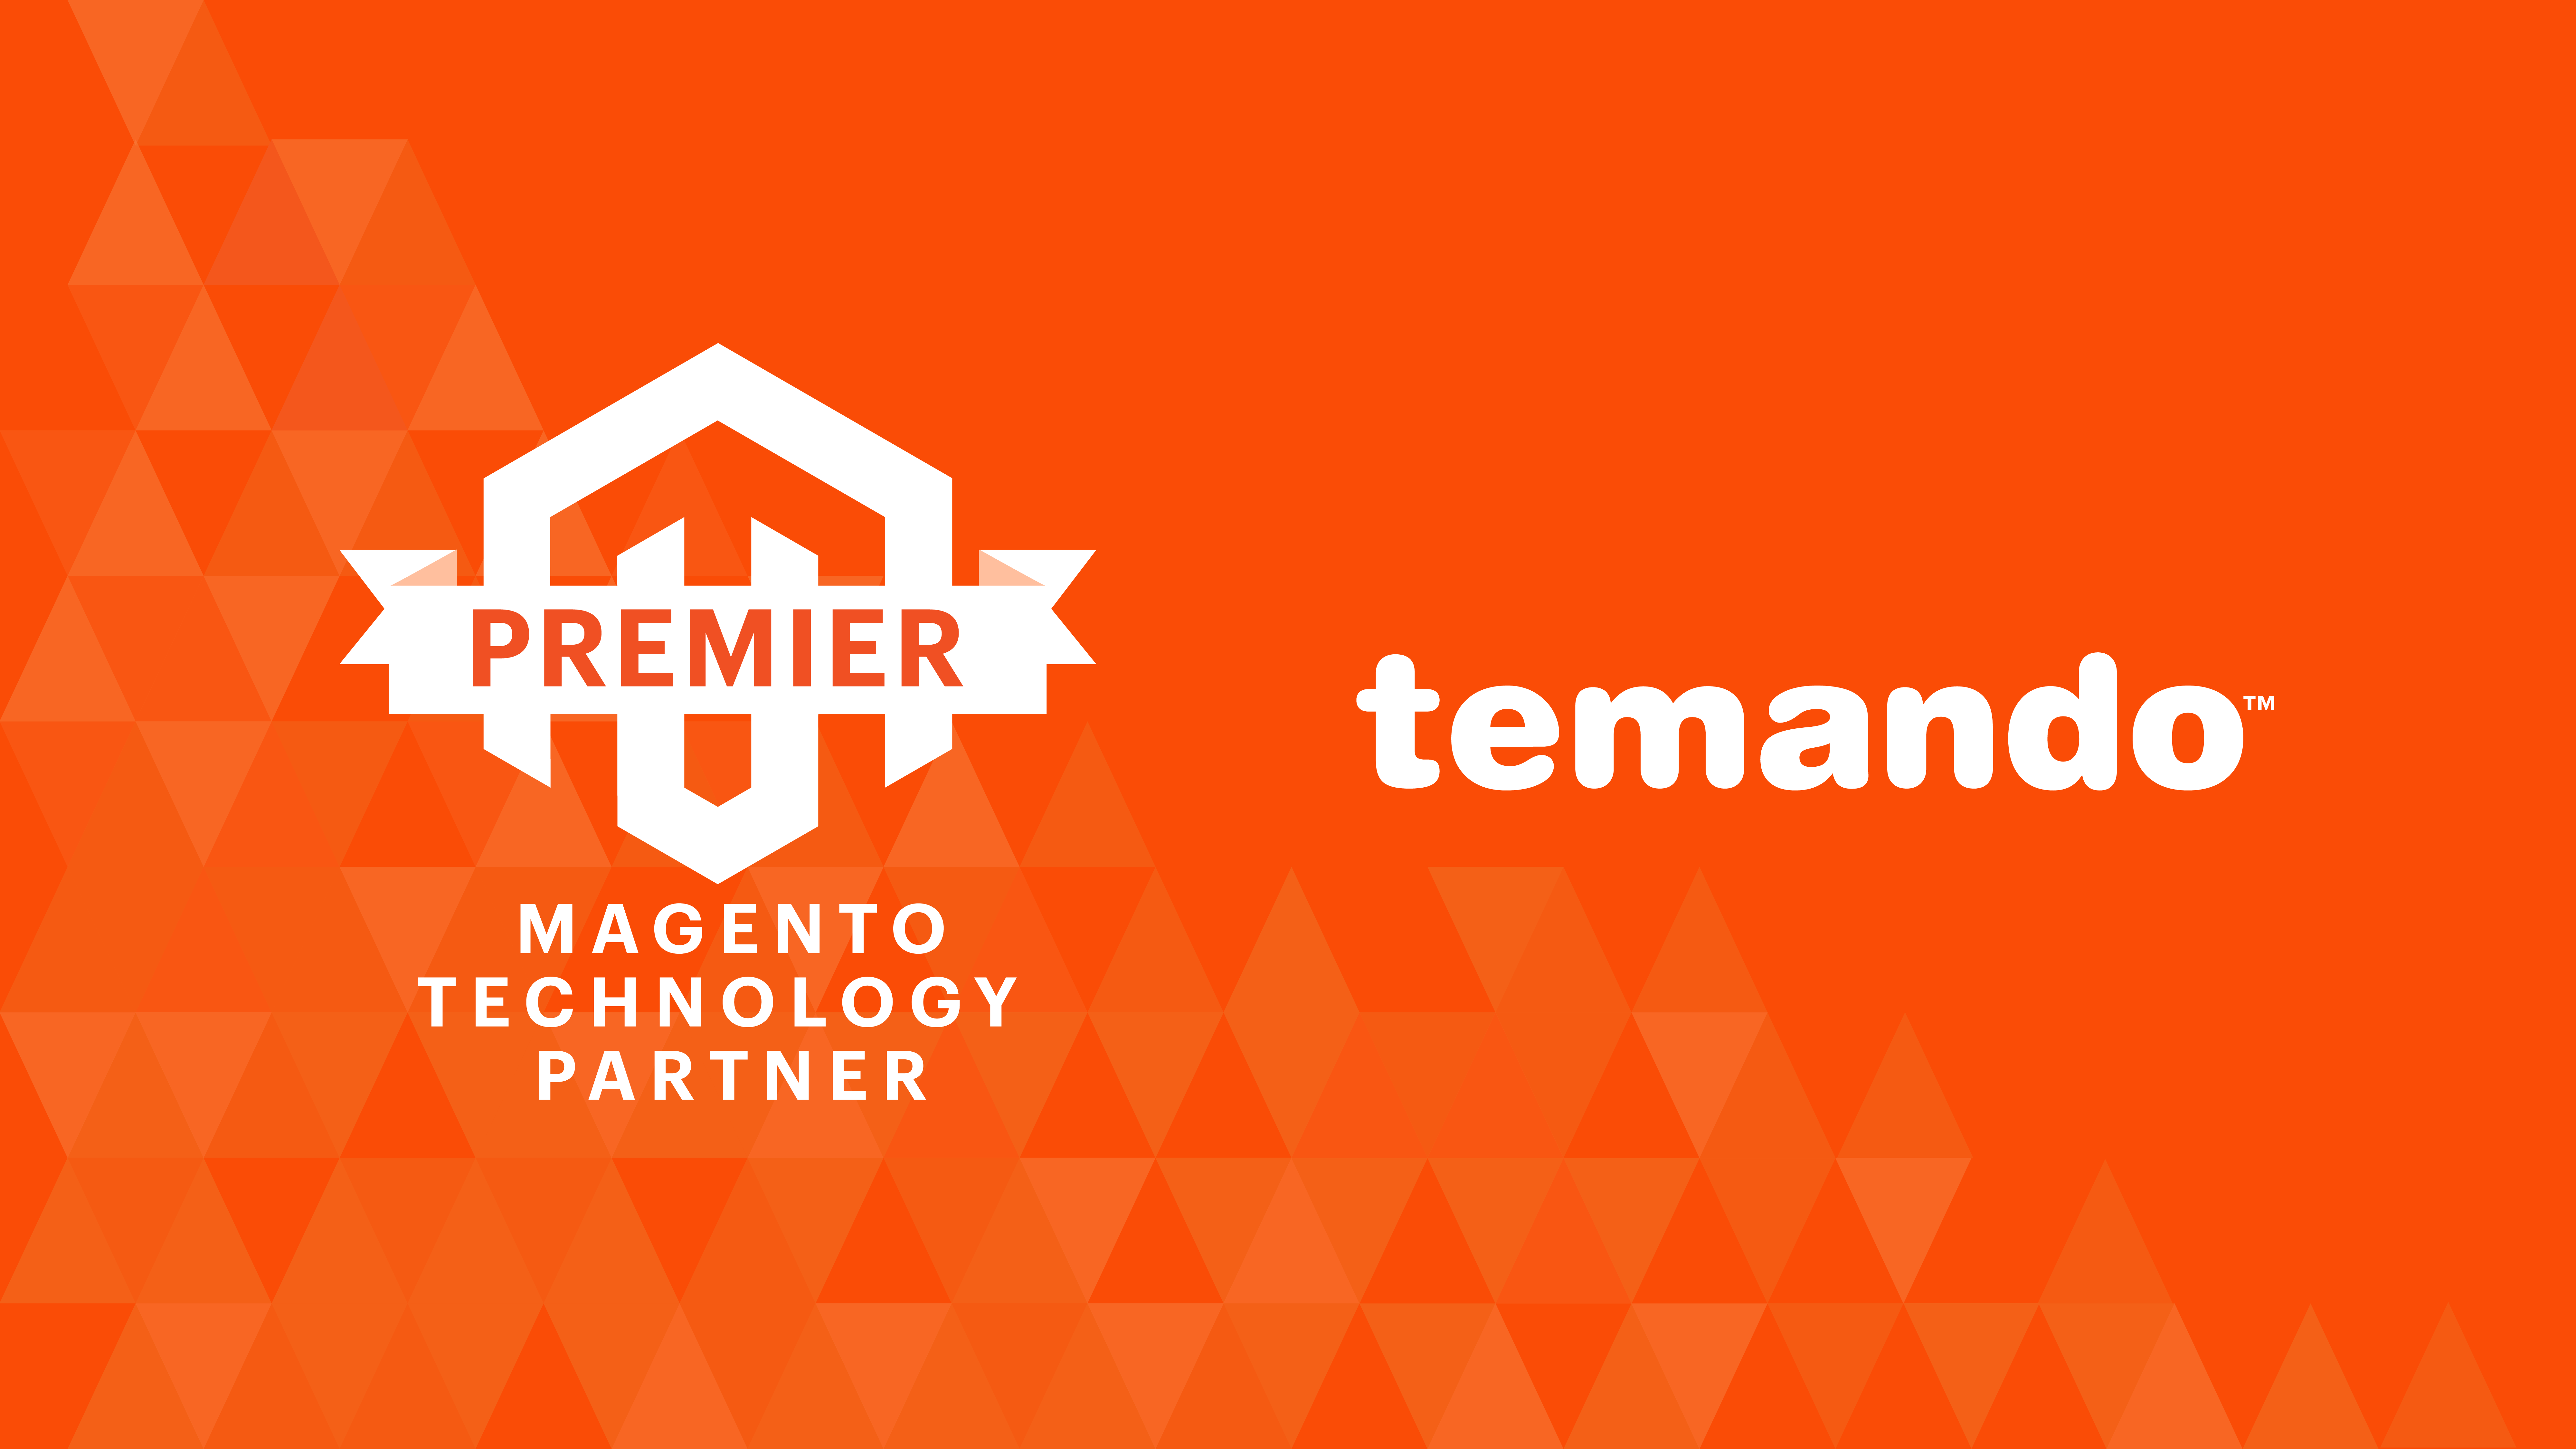 how to become a magento technology partner